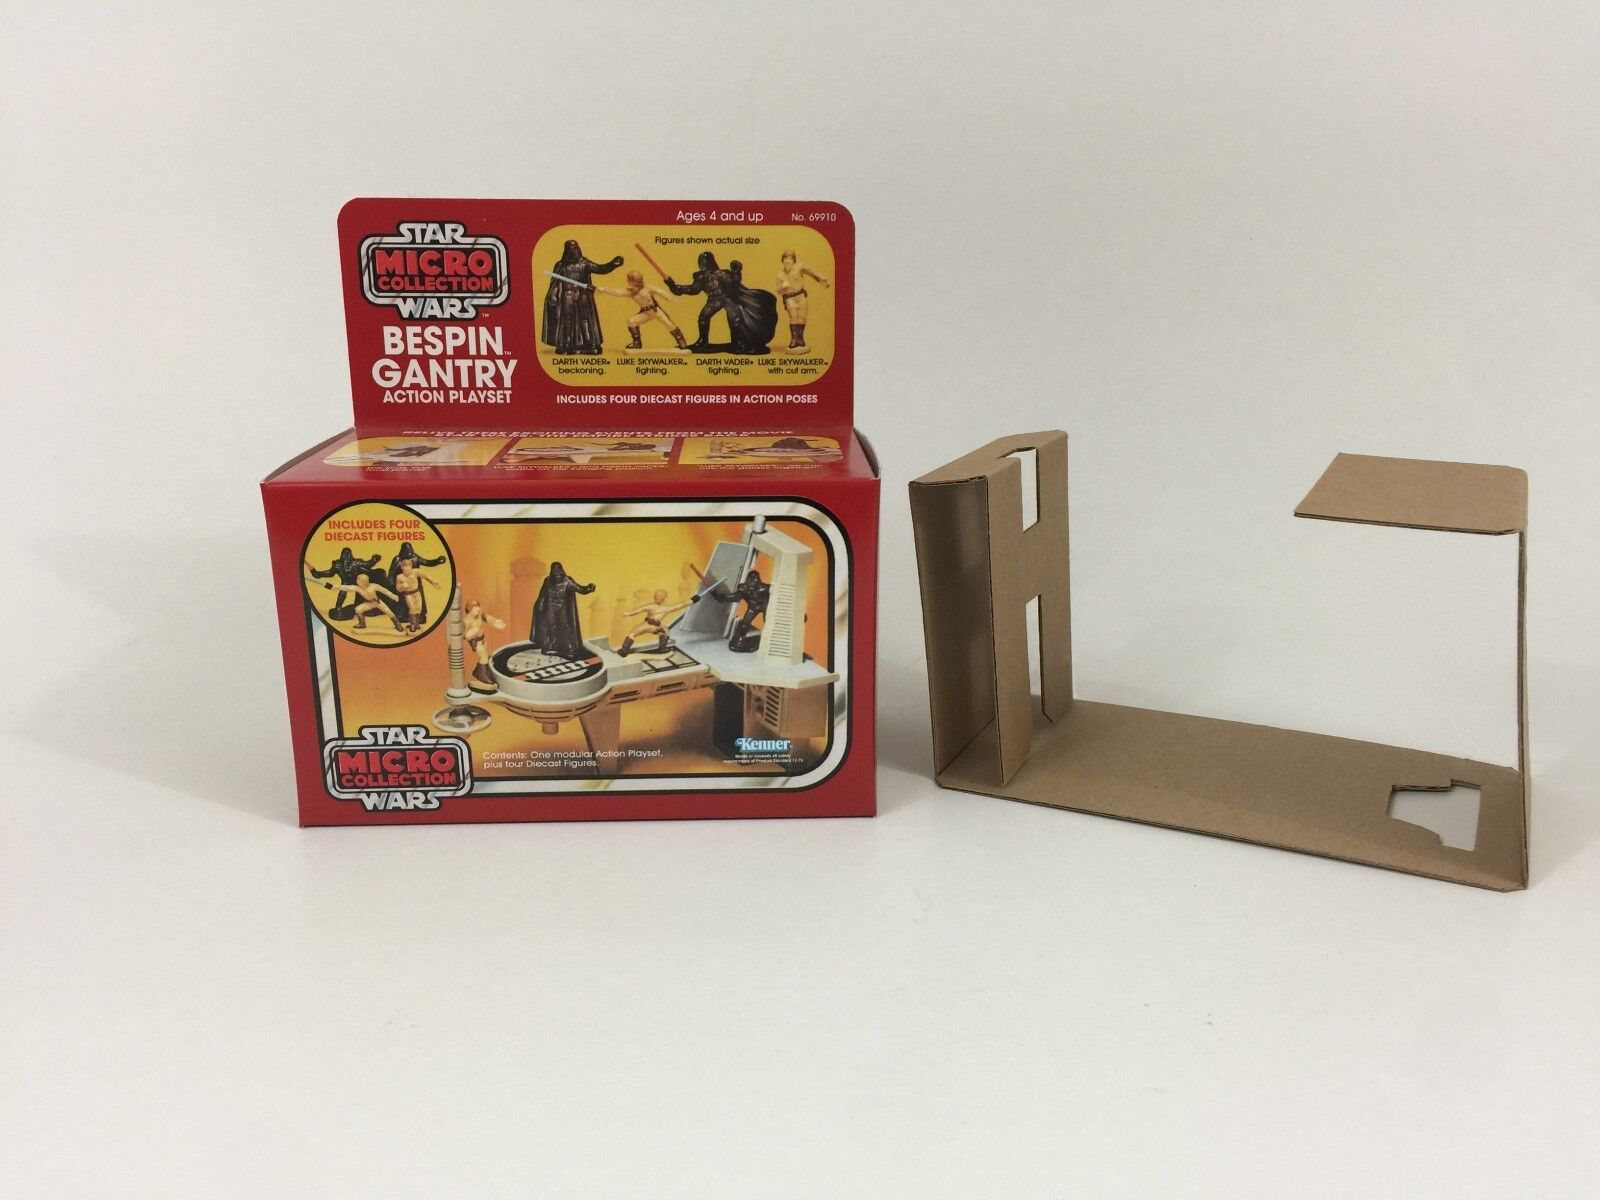 Replacement vintage star wars micro collection bespin gantry box + inserts